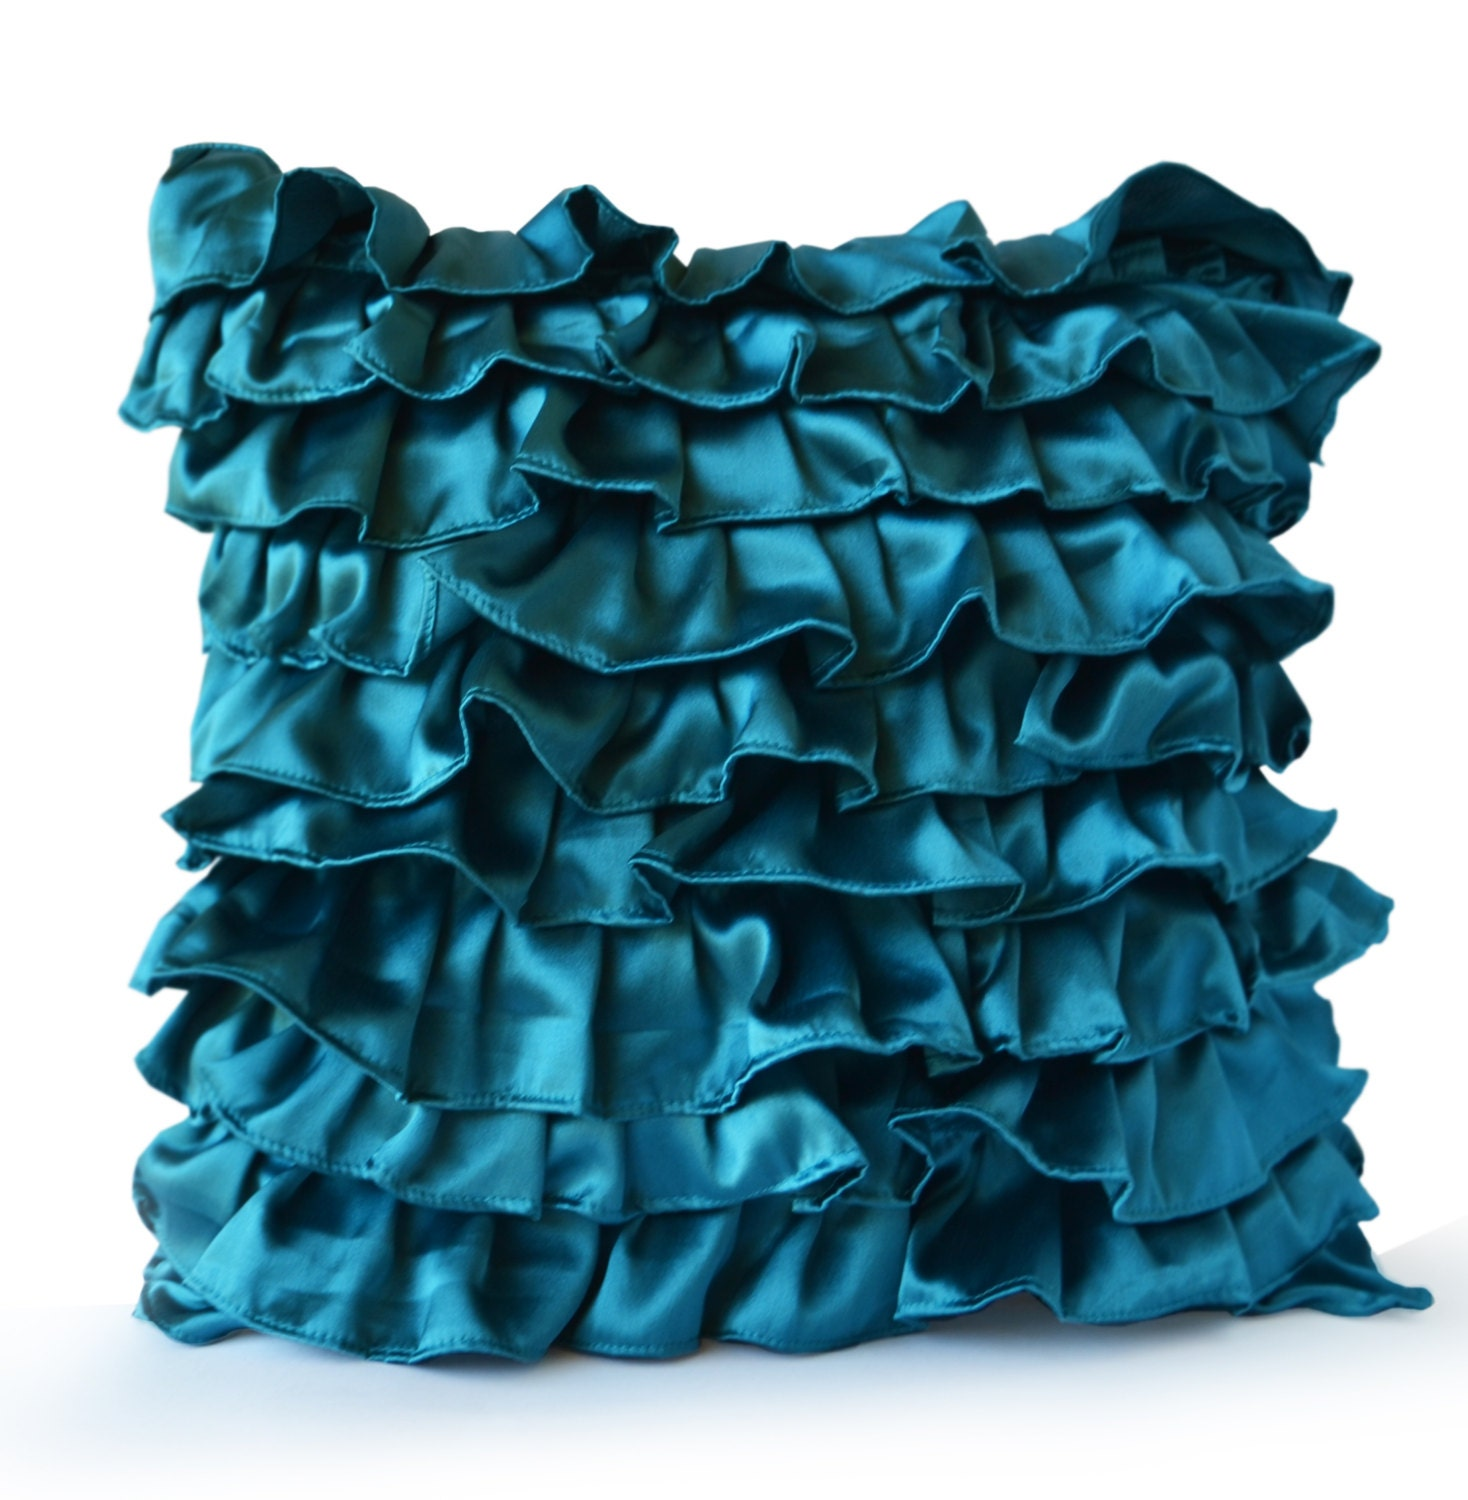 Teal Satin Ruffle Pillow Decorative pillow Teal Ruffle throw